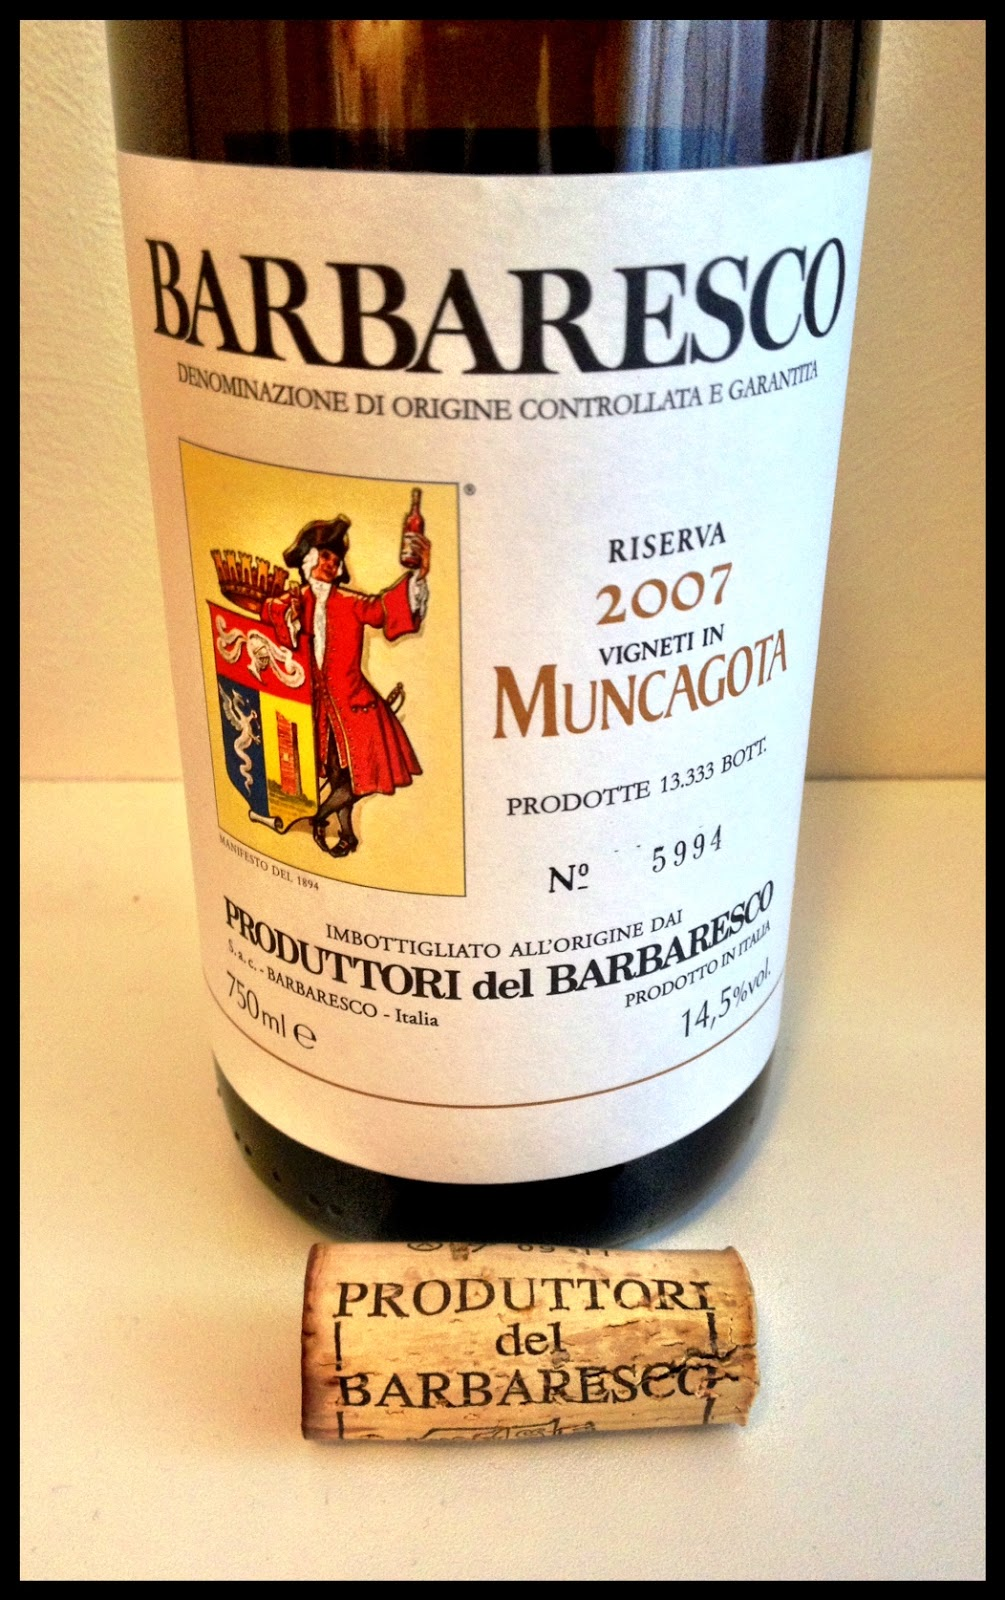 Tasting note on the 2007 Produttori del Barbaresco Muncagota Riserva